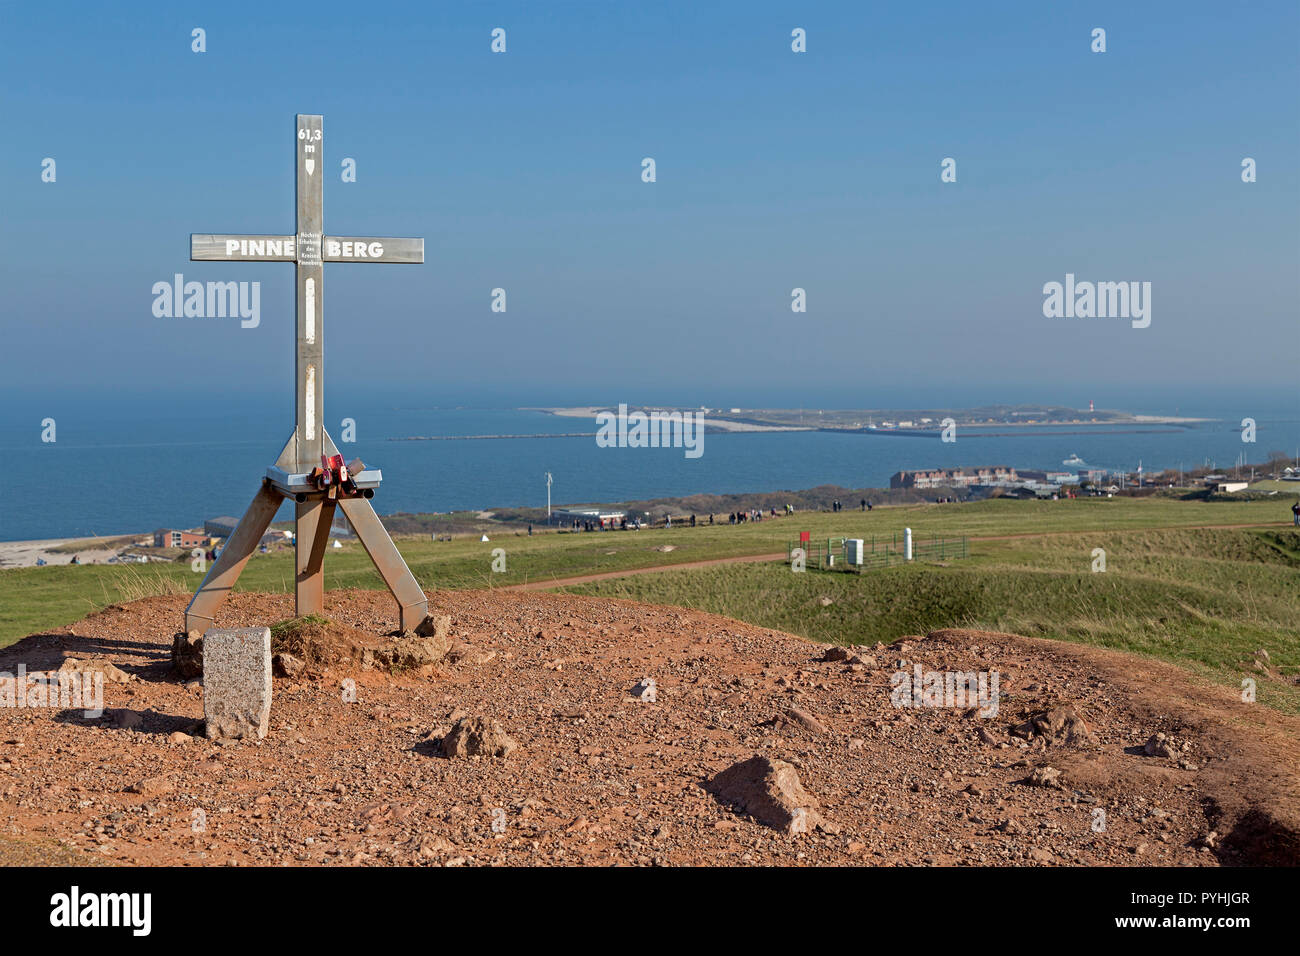 highest point of Pinneberg rural district, in the background the Duene (dune), Heligoland, Schleswig-Holstein, Germany - Stock Image